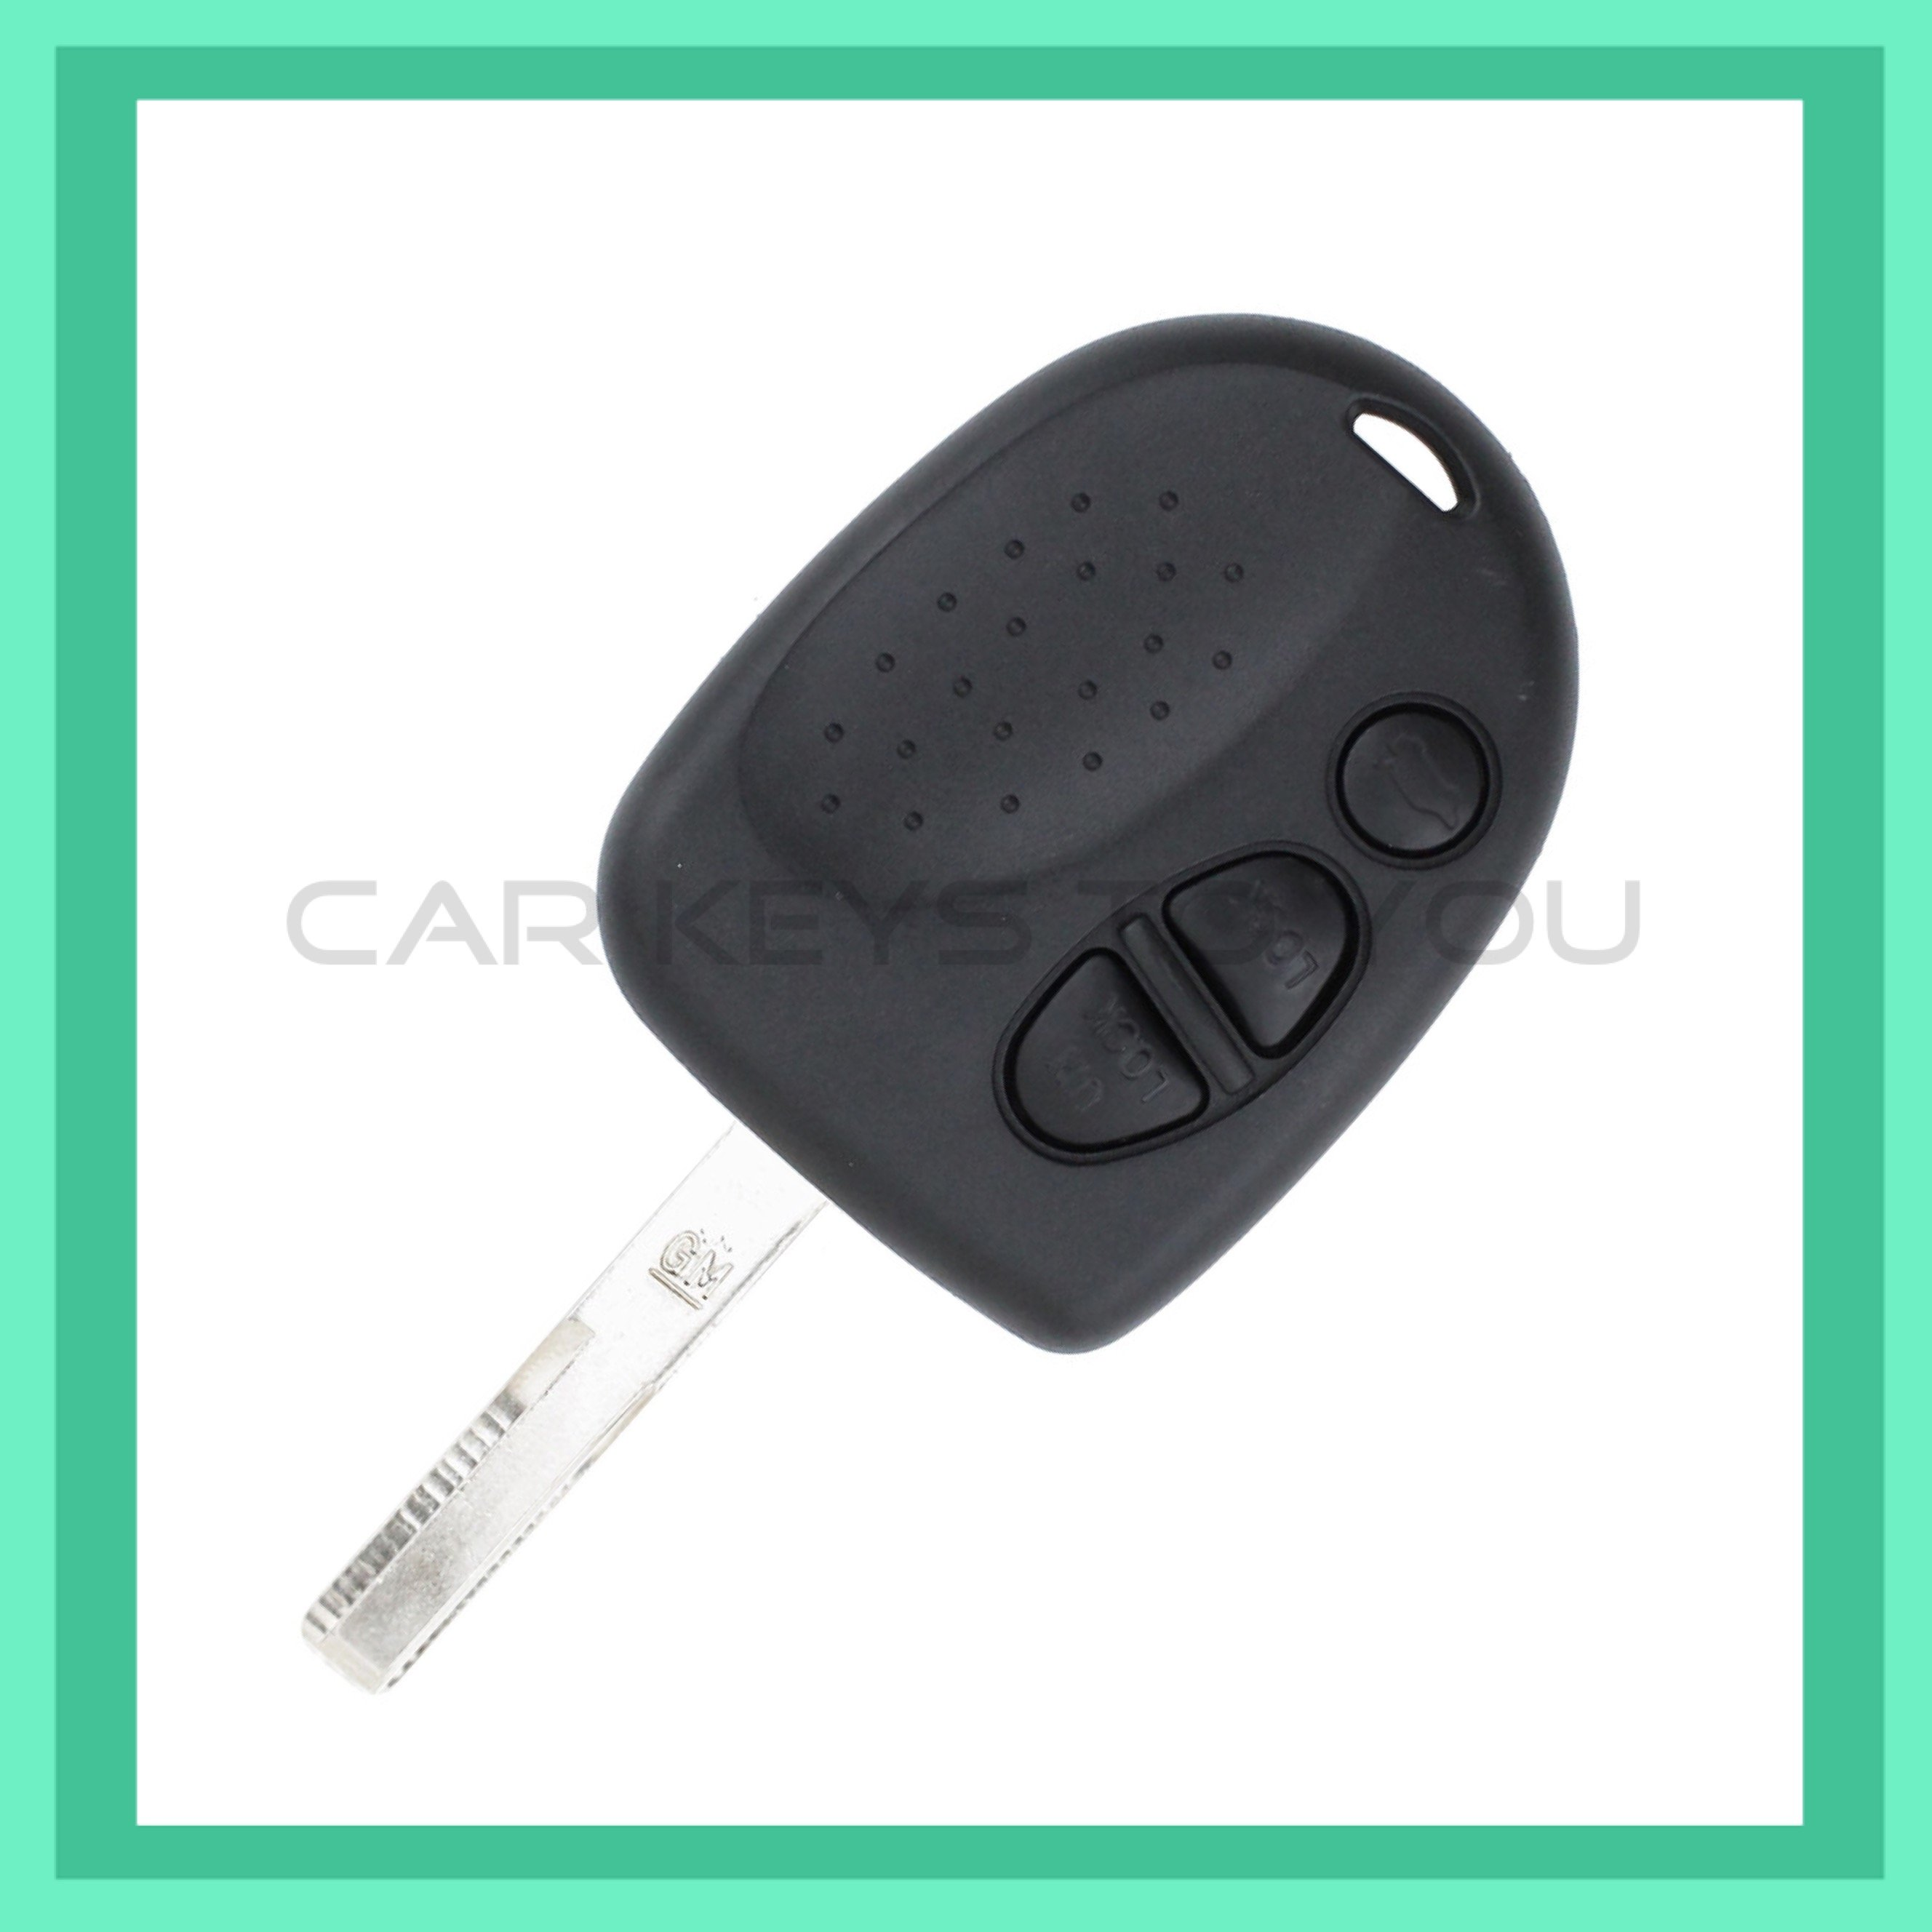 Adventra VY Remote Car Key, 2003 - 2004